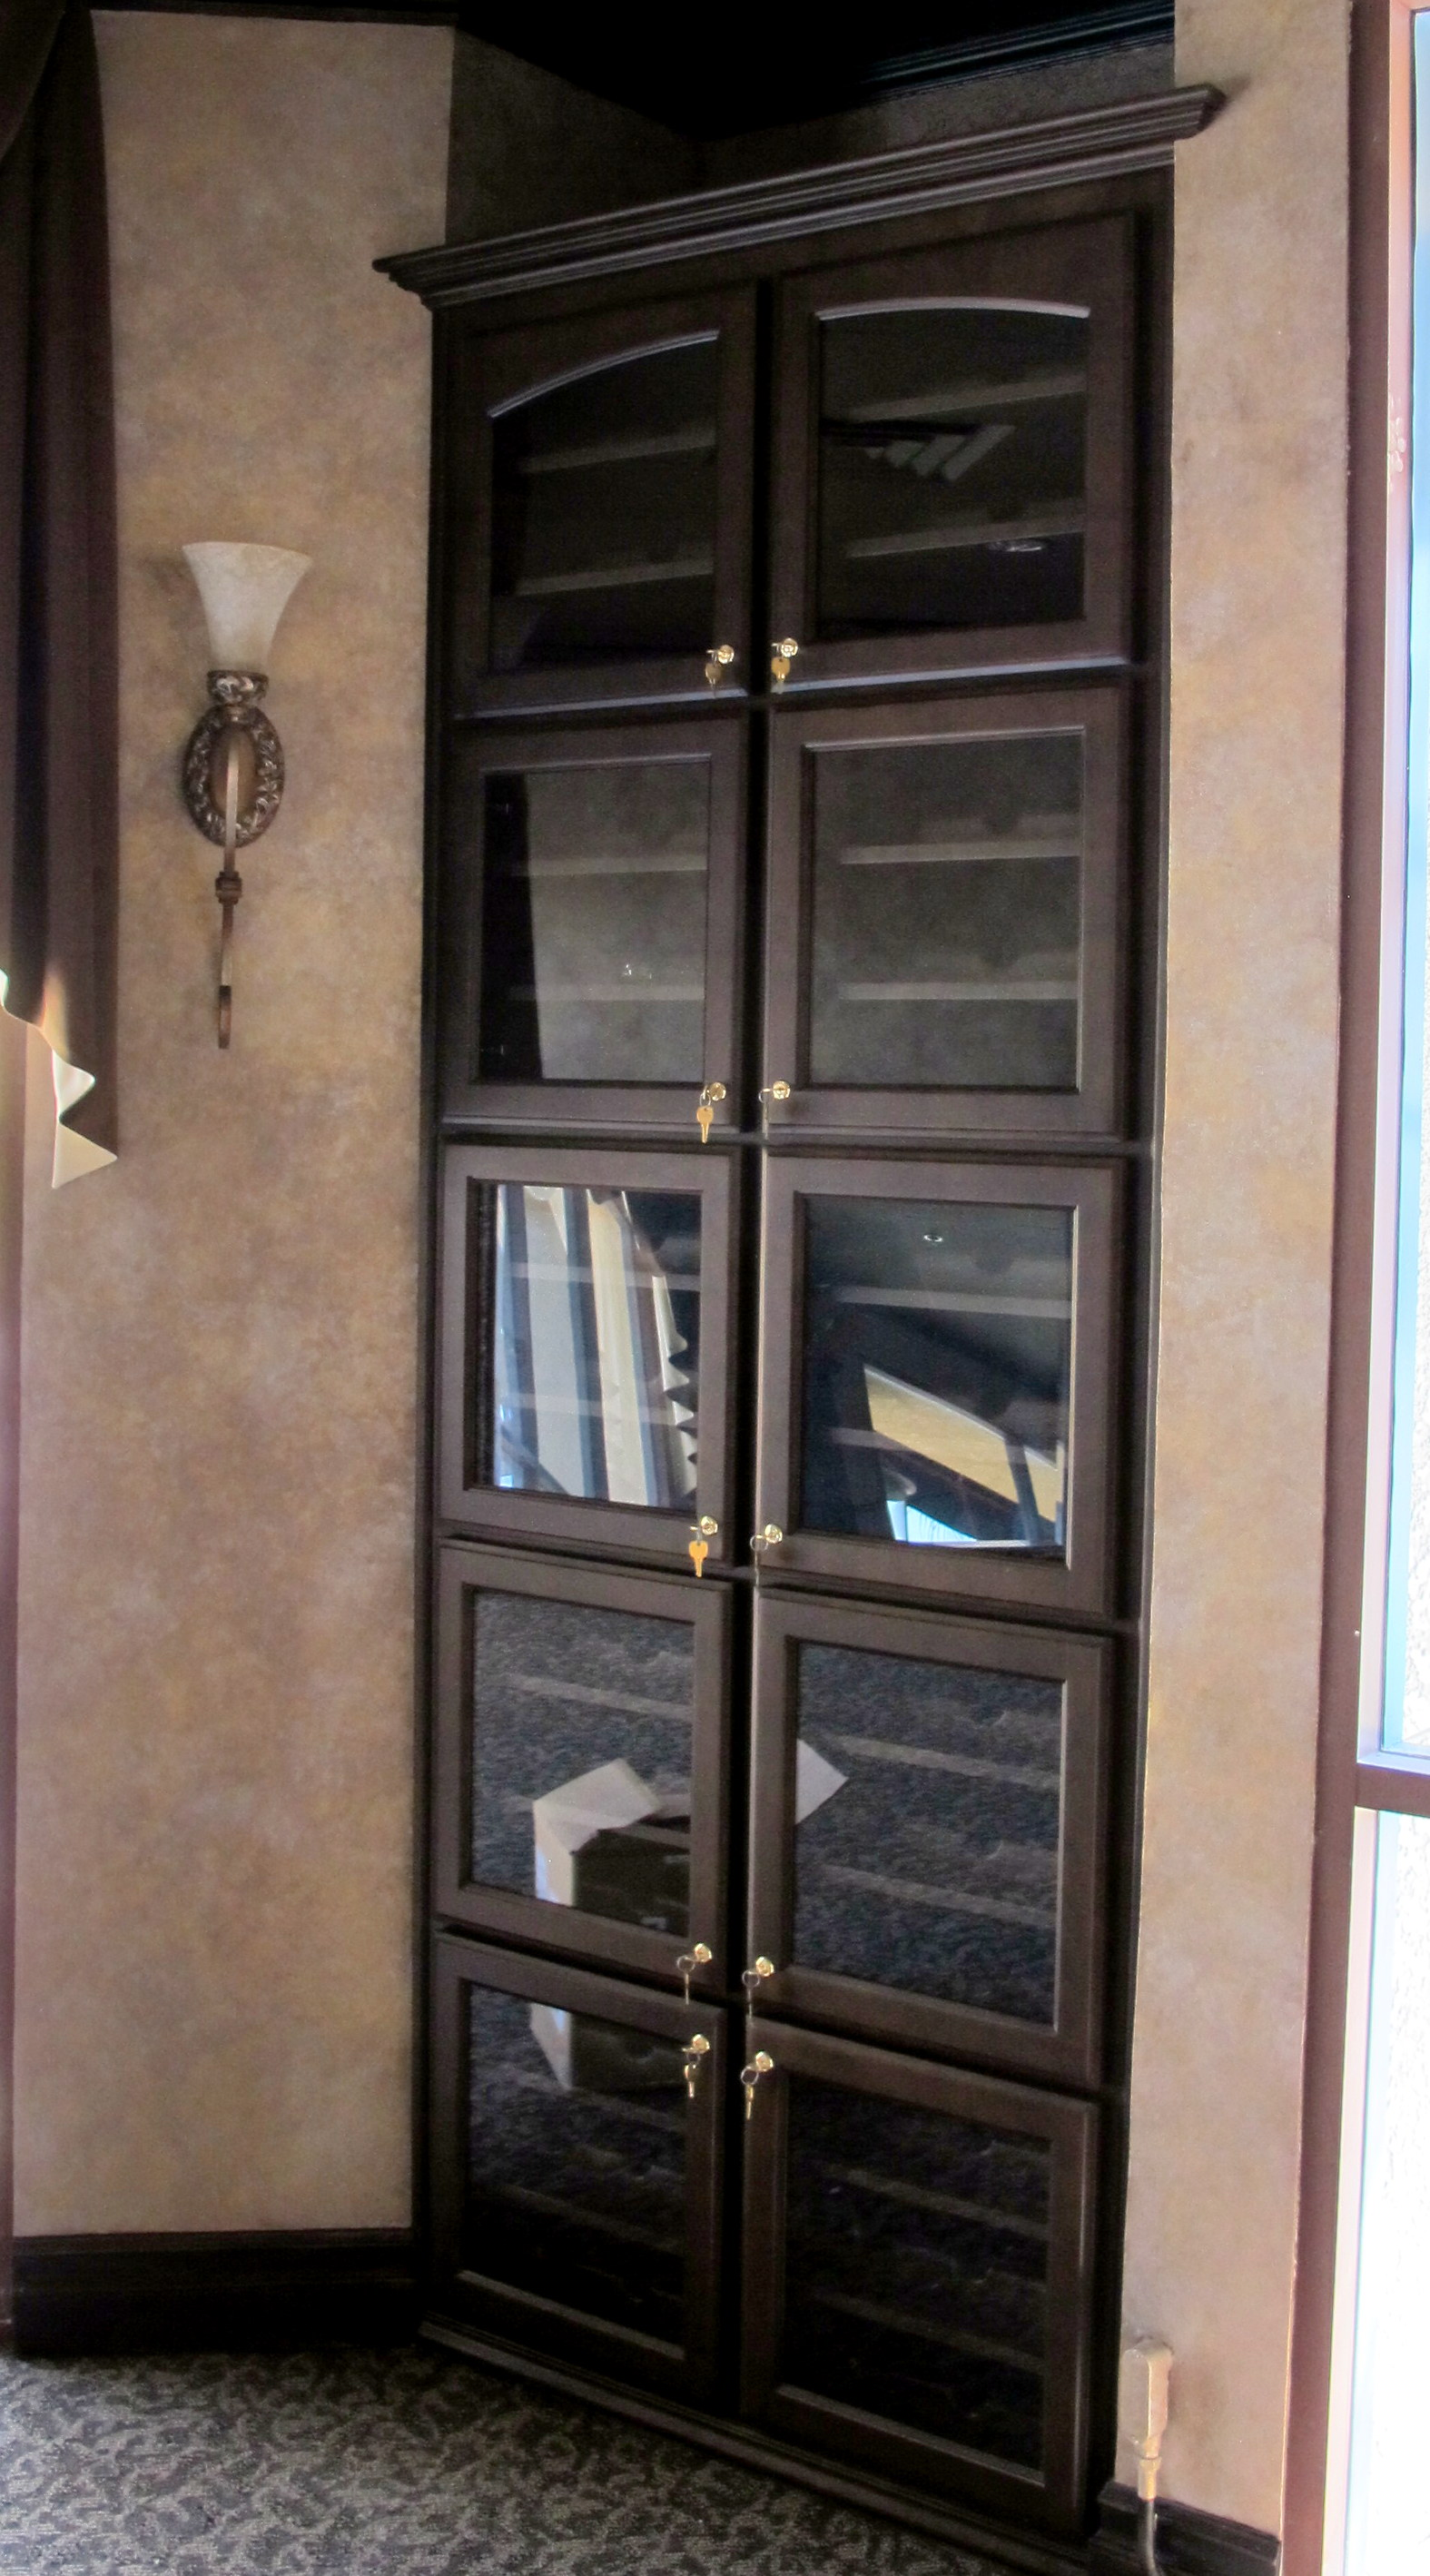 Built-In Wine Cabinet for Local Restaurant